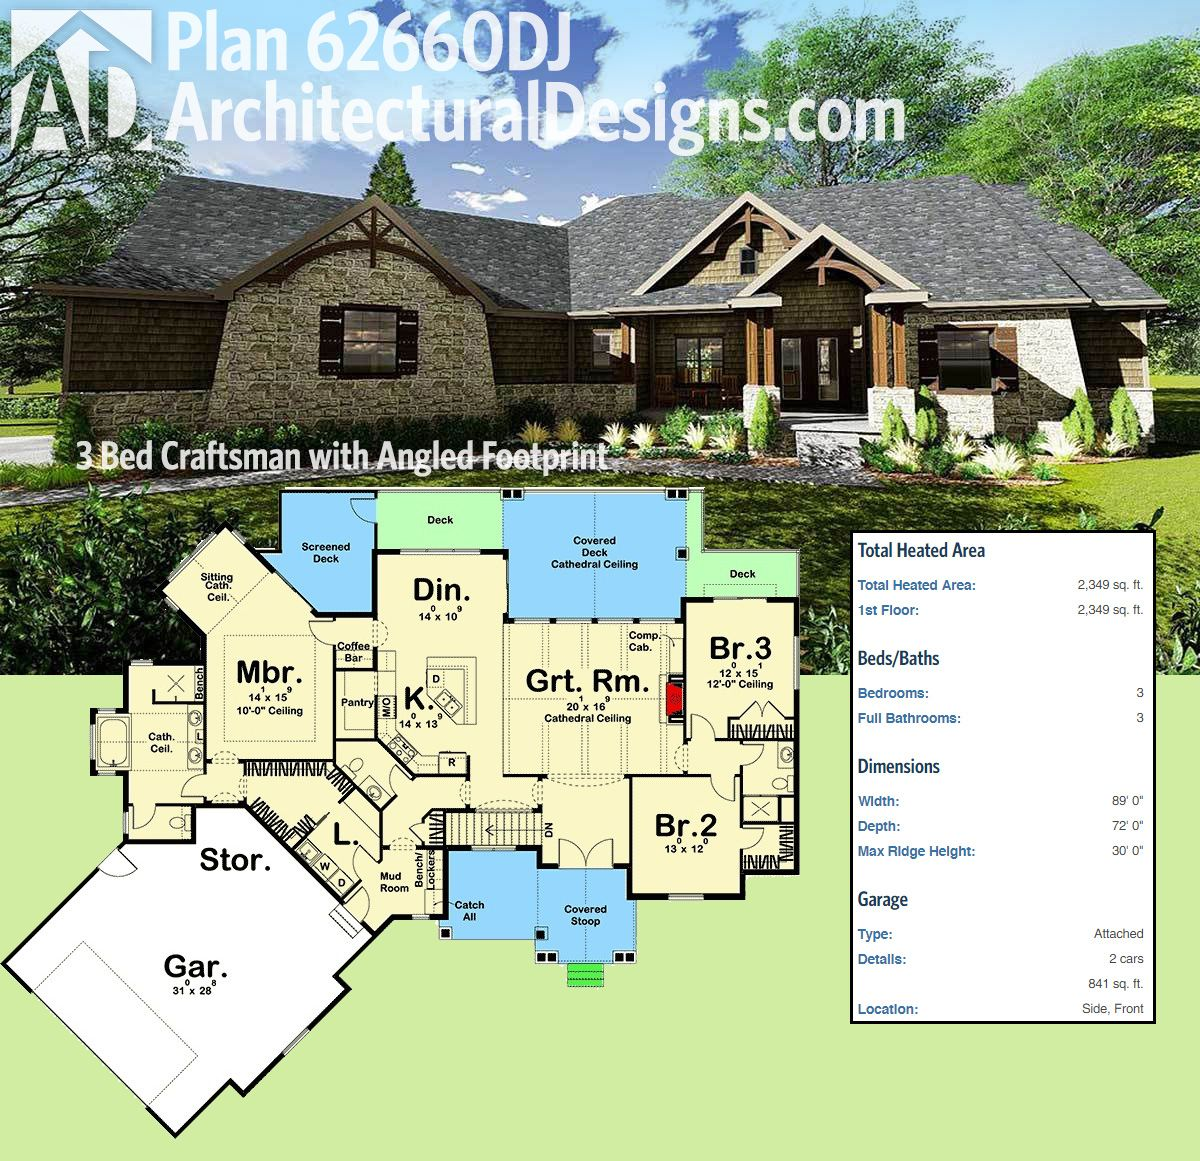 plan 62660dj 3 bed craftsman with angled footprint in 2018 house rh pinterest com